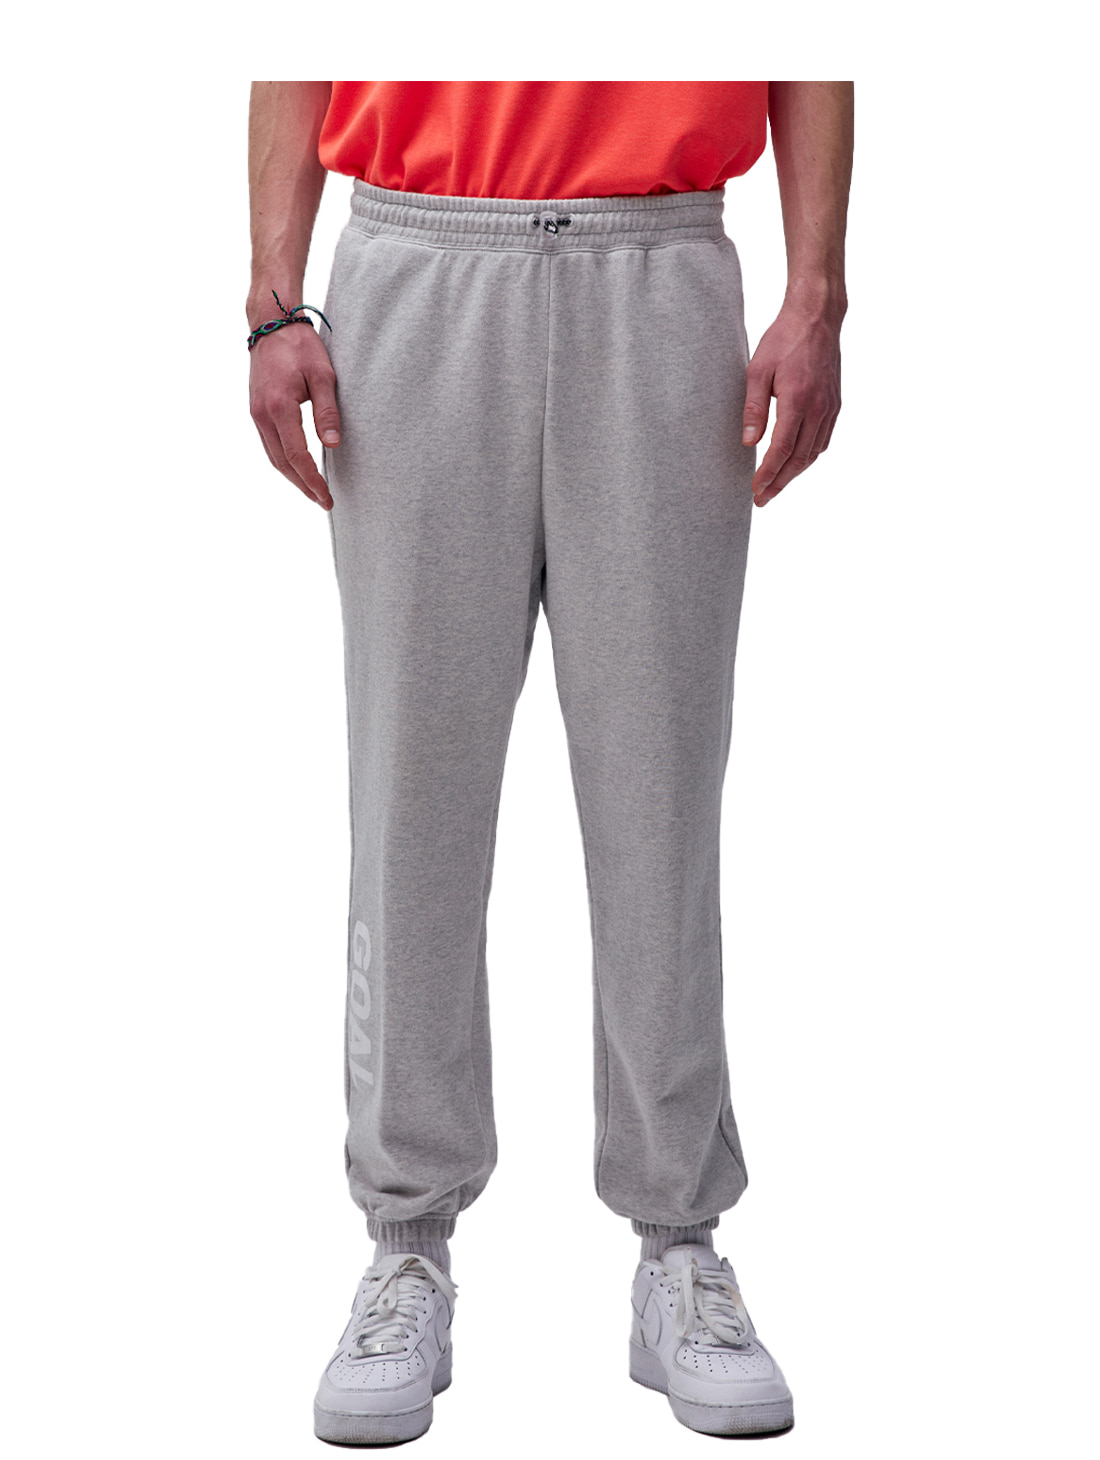 FLOCKING KNIT JOGGER PANTS - GREY